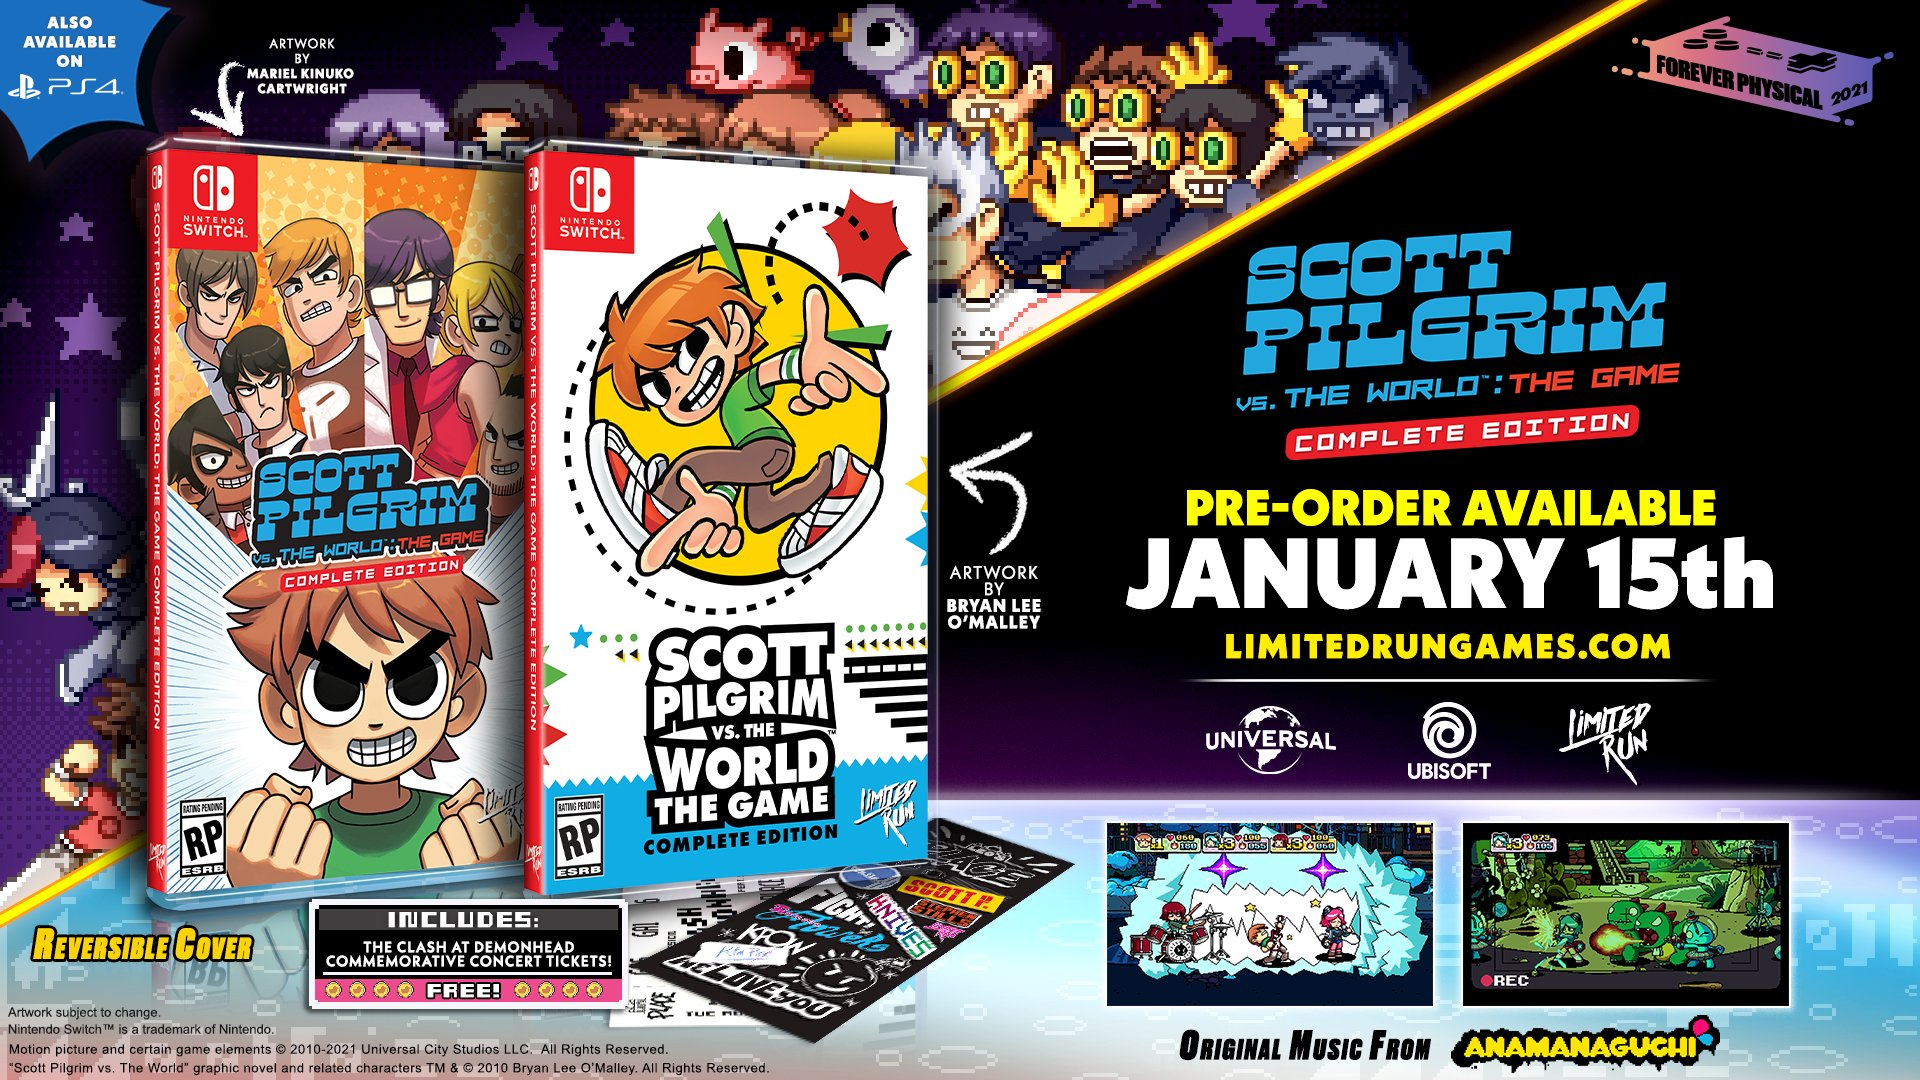 Limited Run Games выпустит ограниченные издания Scott Pilgrim vs. The World: The Game  Complete Edition